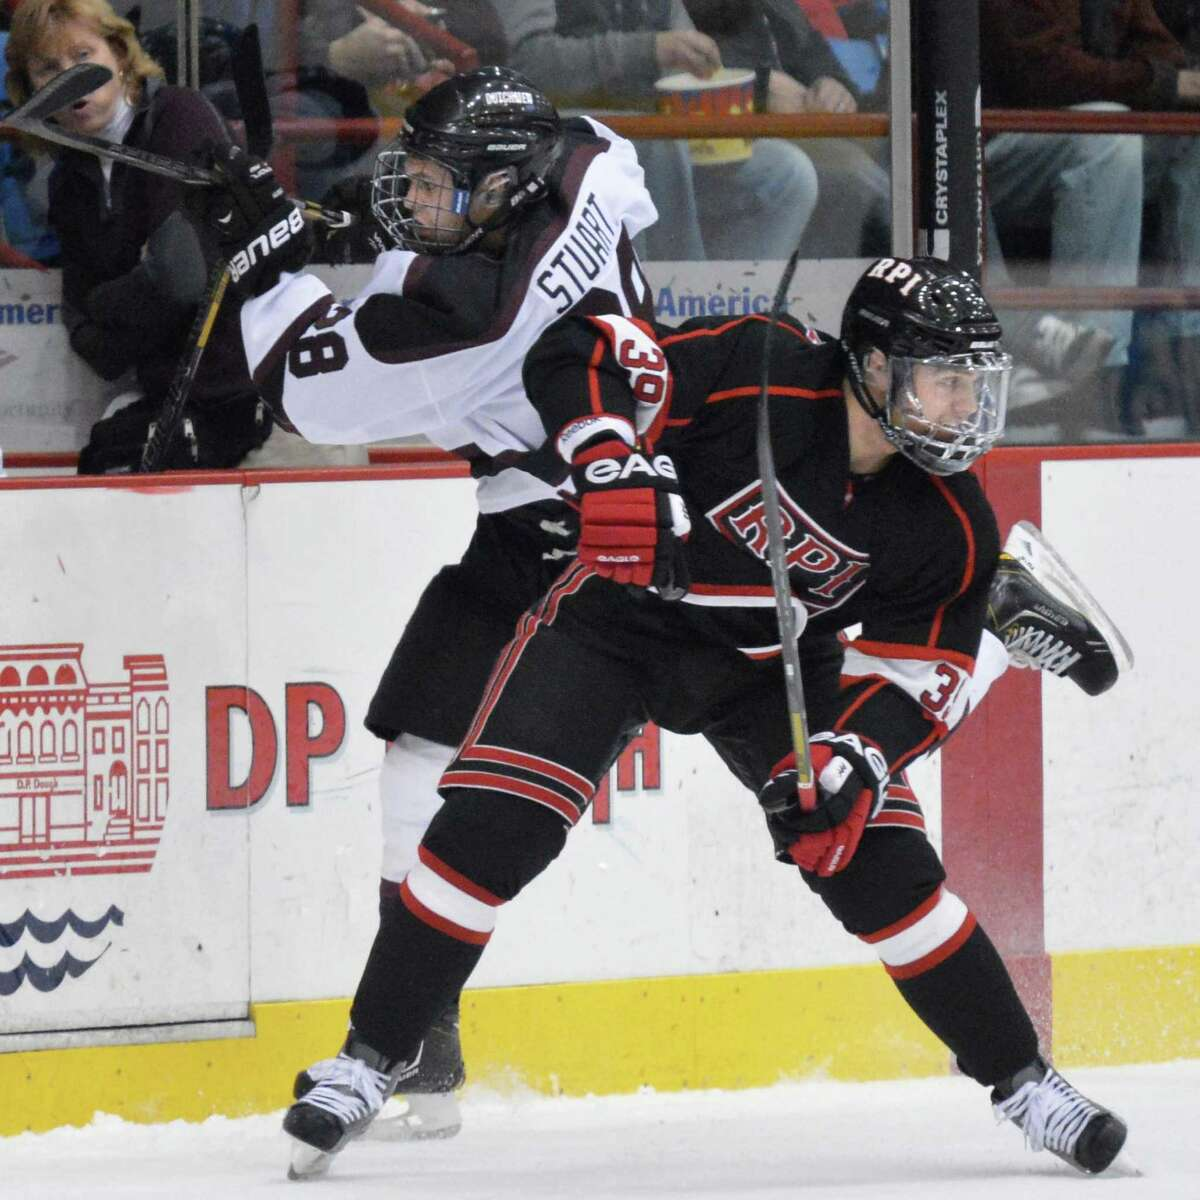 Union's #28 Shaen Stuart, left, and RPI's #39 Ryan Haggerty tangle up against the boards during Saturday night's game at the Houston Field House in Troy Nov. 2, 2012. (John Carl D'Annibale / Times Union)